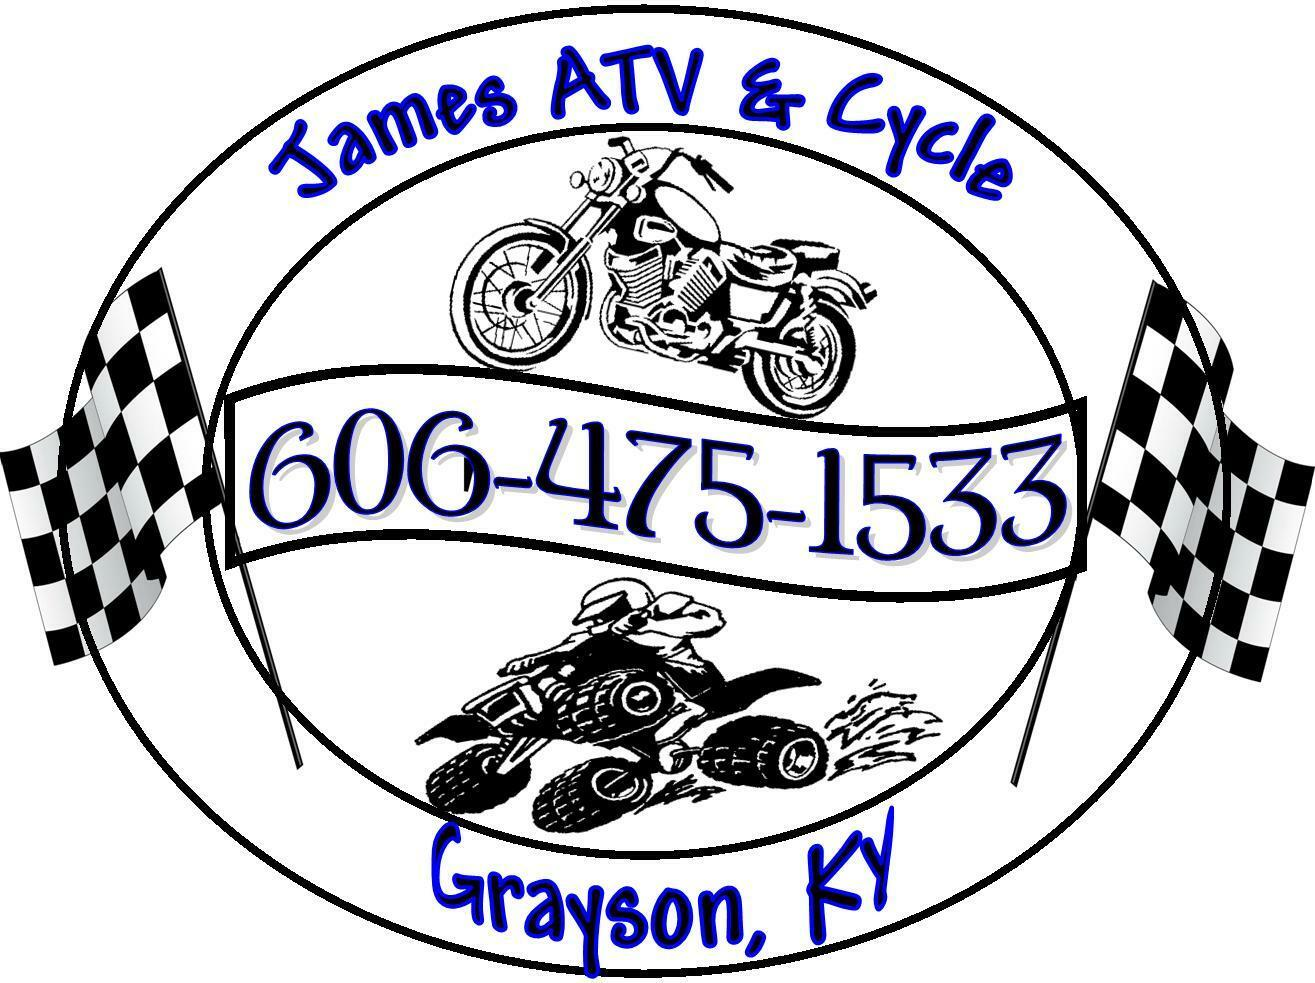 James ATV & Cycle